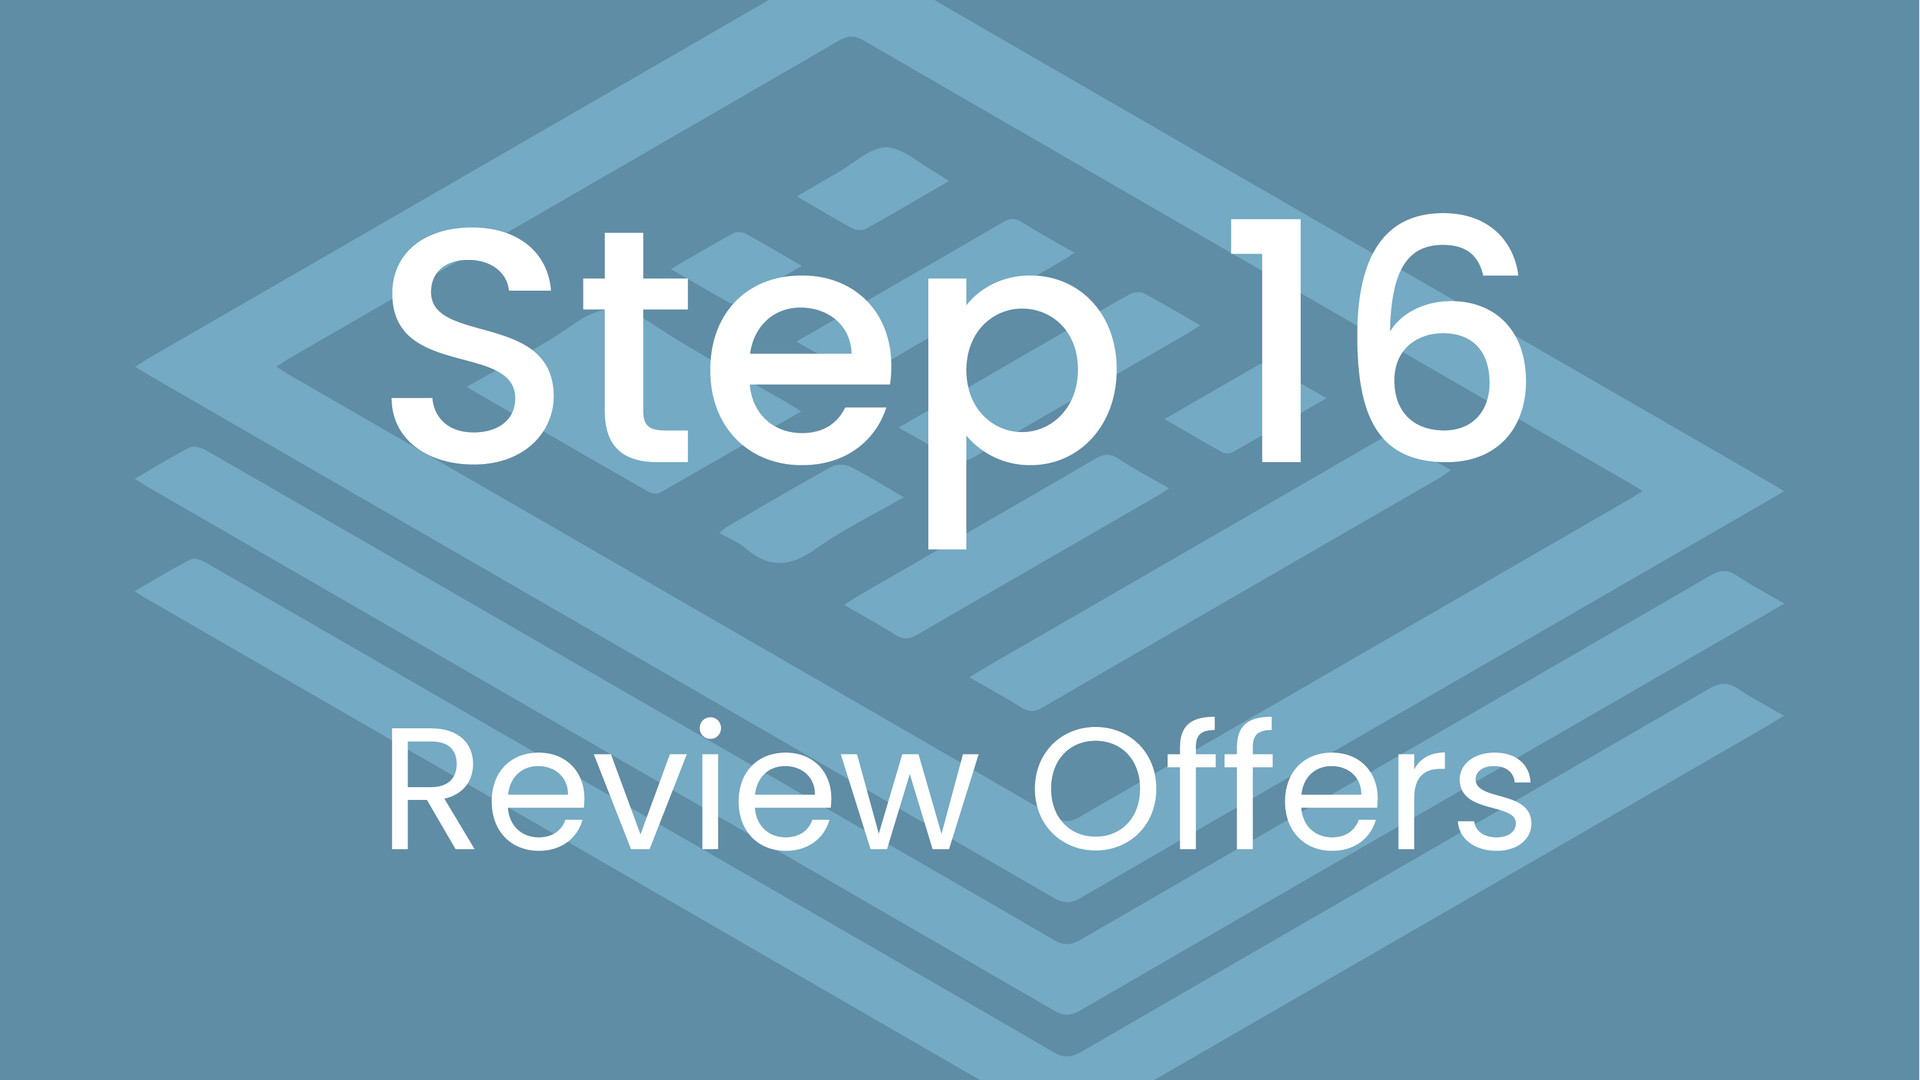 Step 16: Review Offers